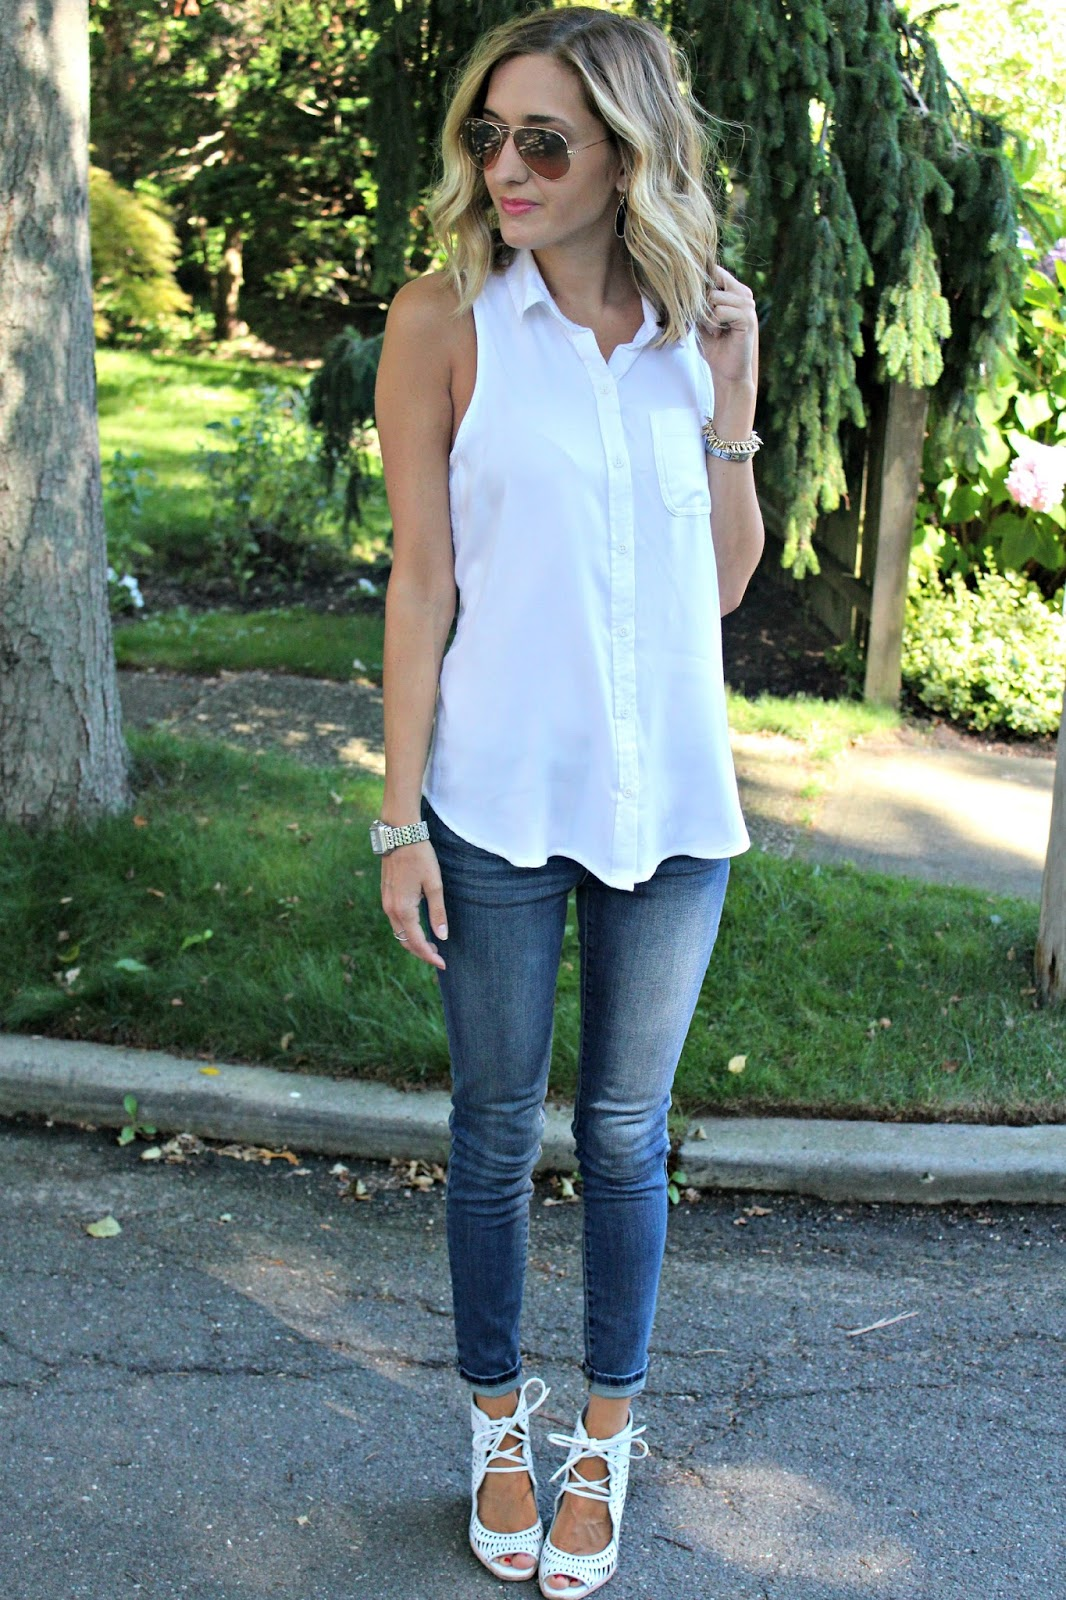 denim and white outfit from Target